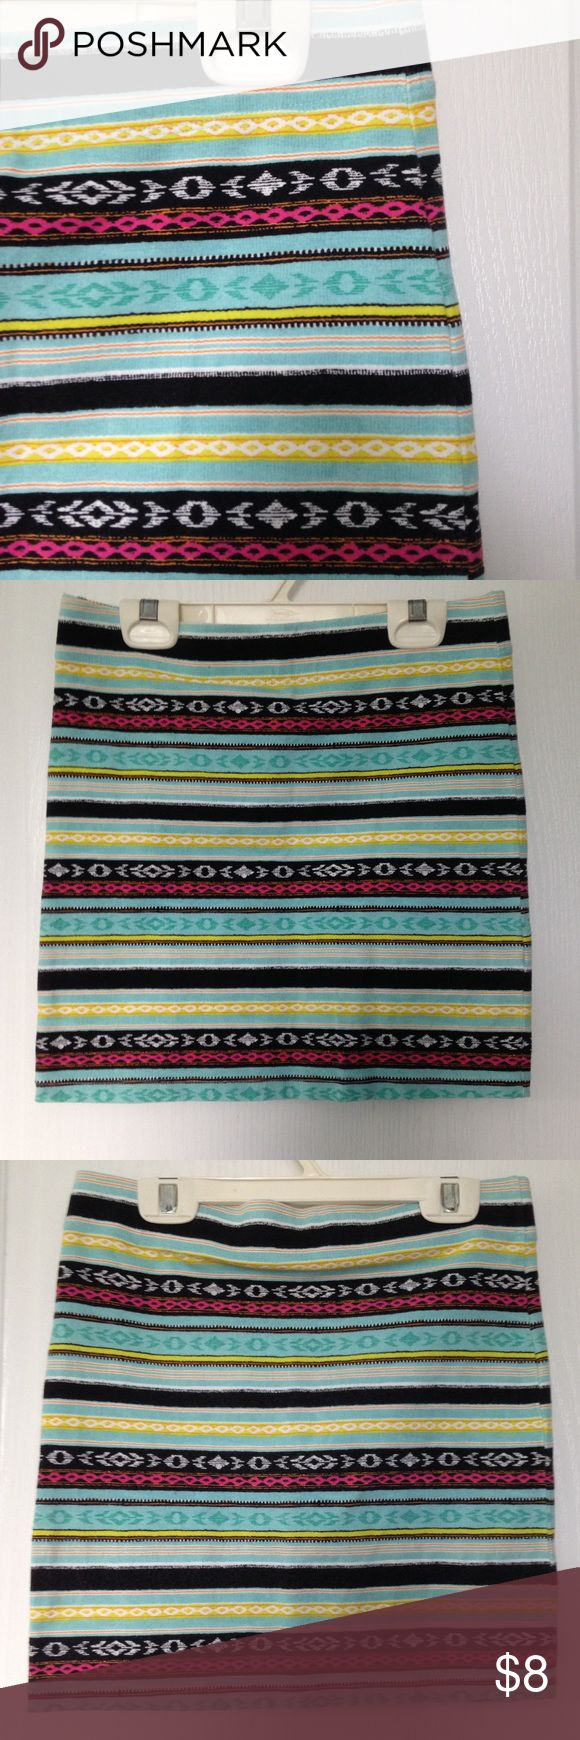 Aztec print skirt Aztec print body con skirt from Forever 21. Excellent condition, size medium. Forever 21 Skirts